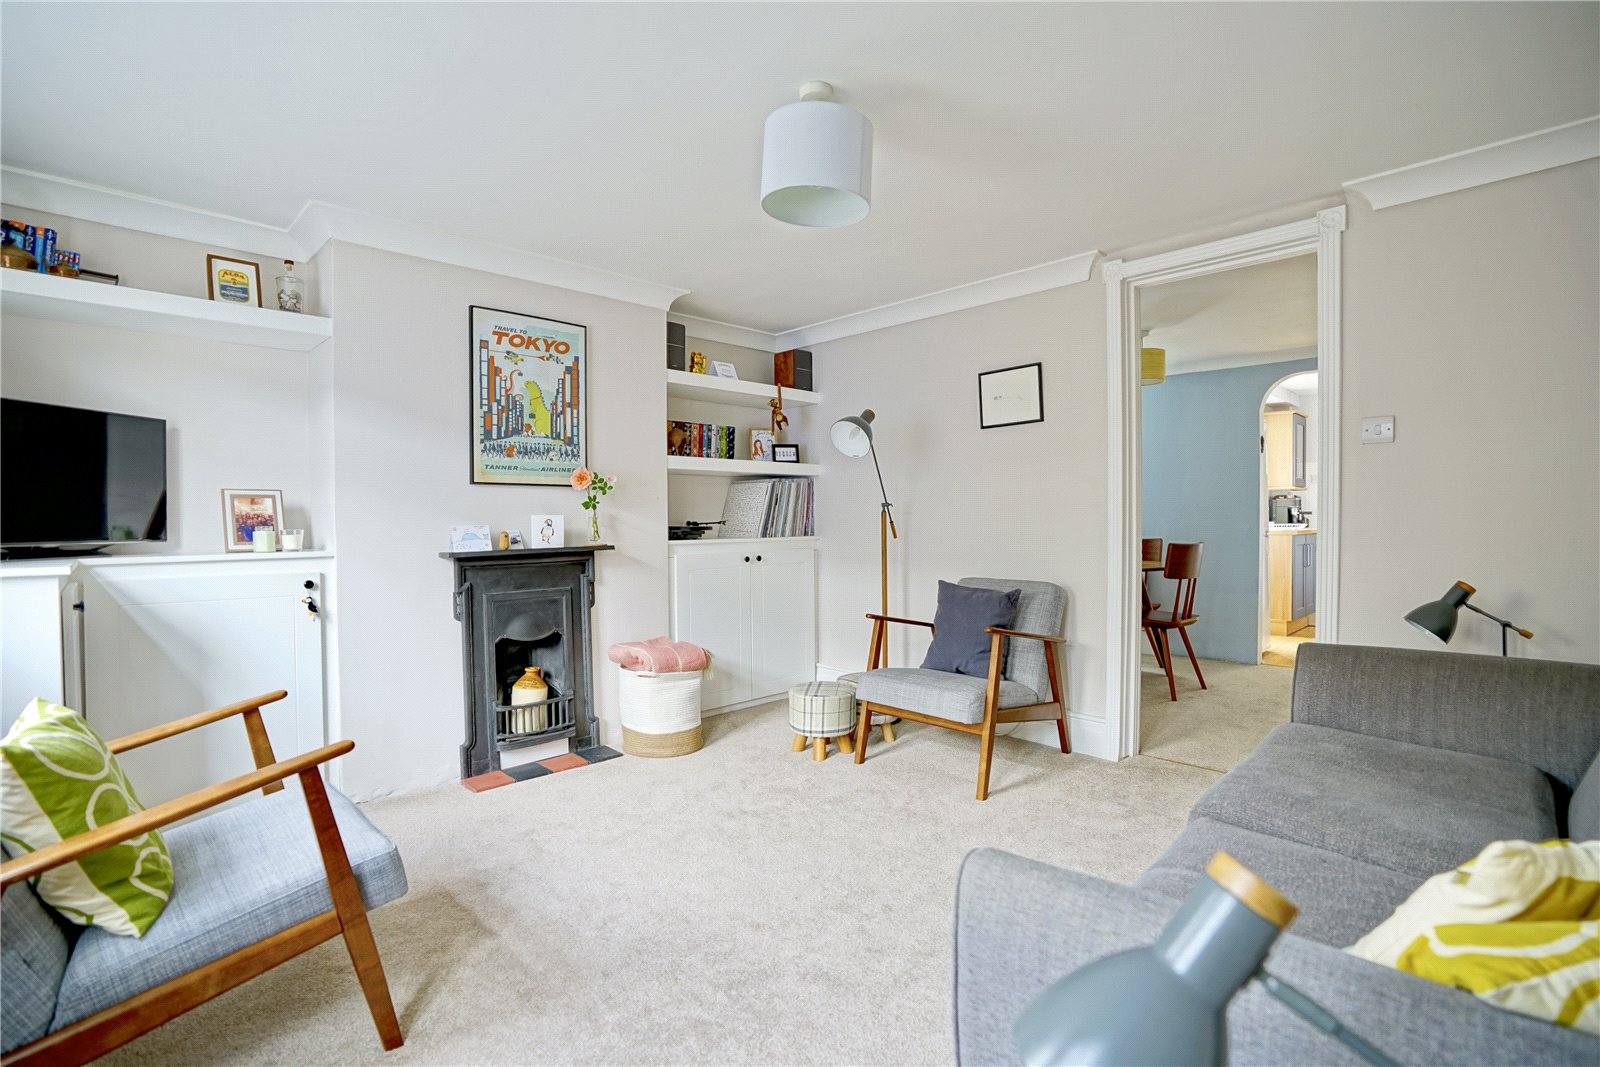 2 bed house for sale in Eynesbury, PE19